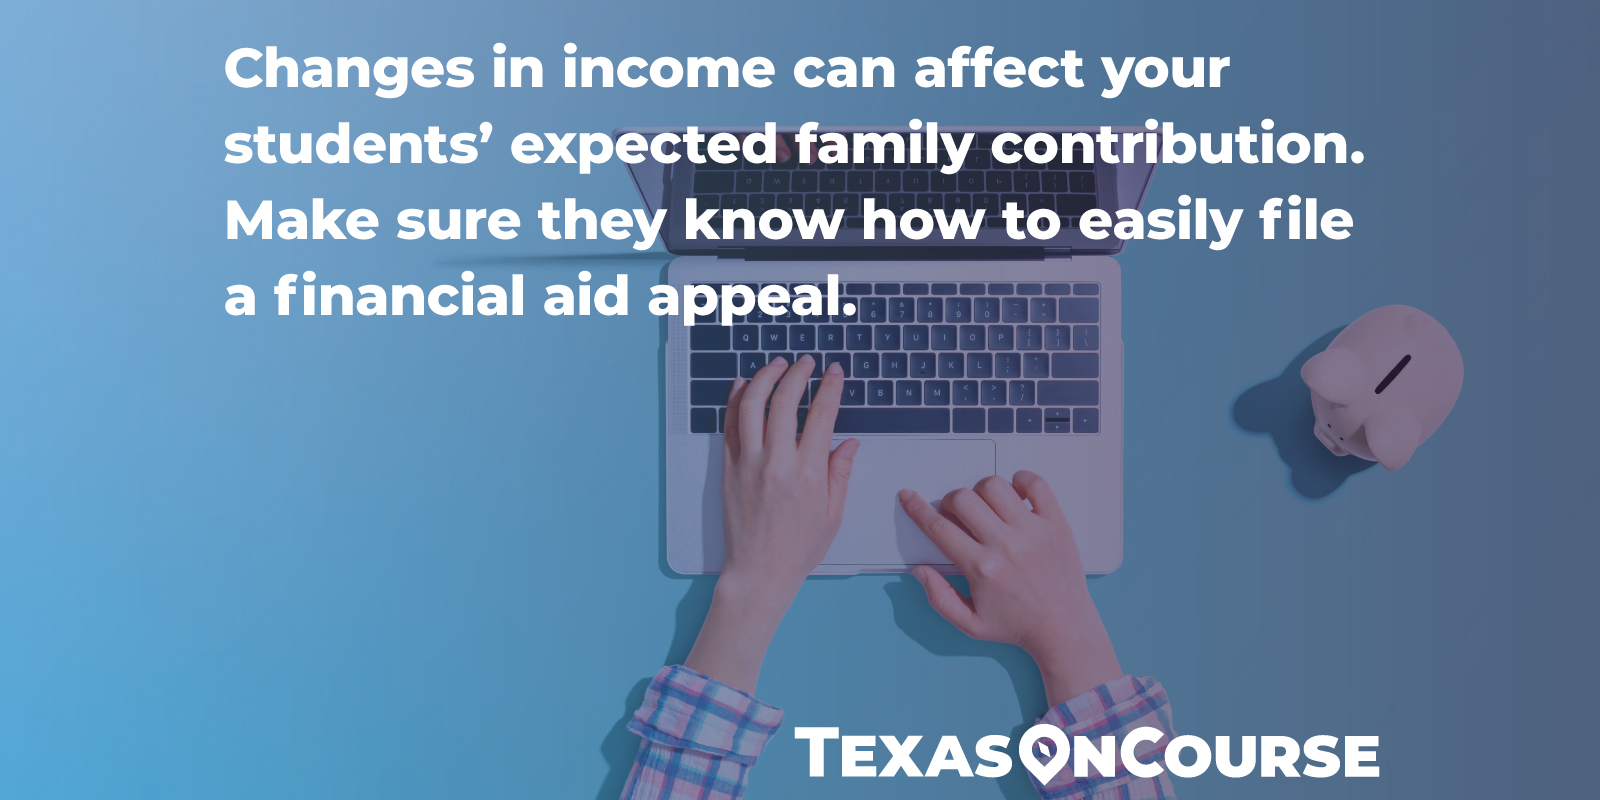 Changes in income can affect your students' expected family contribution. Make sure they know how to easily file a financial aid appeal.